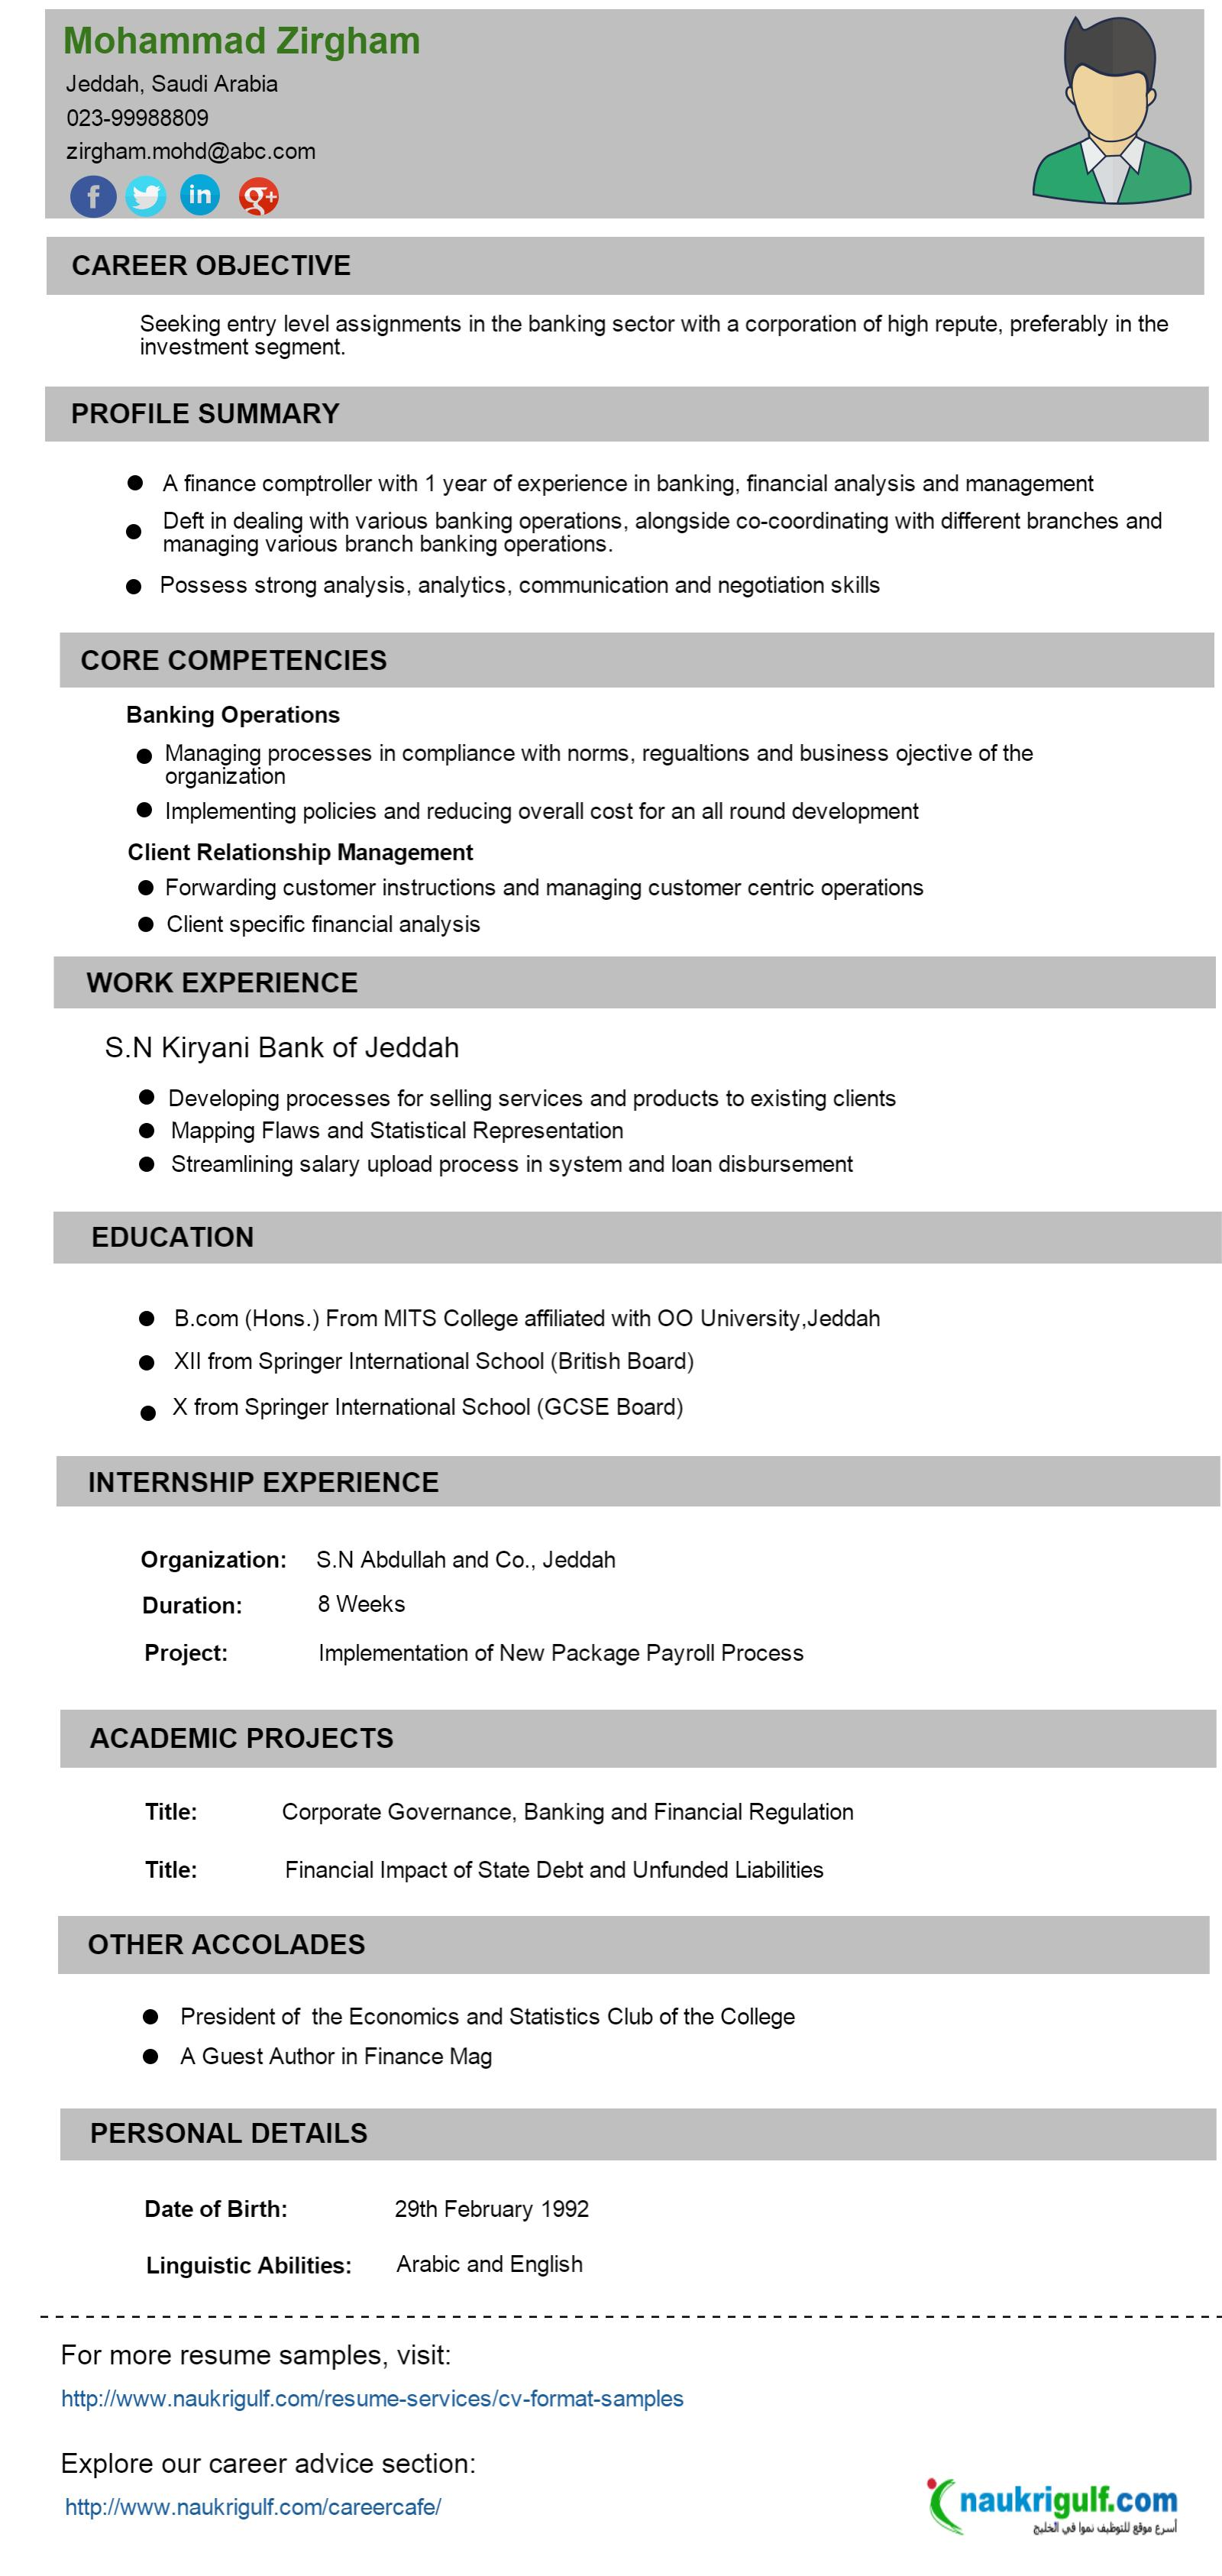 cv format for banking sector